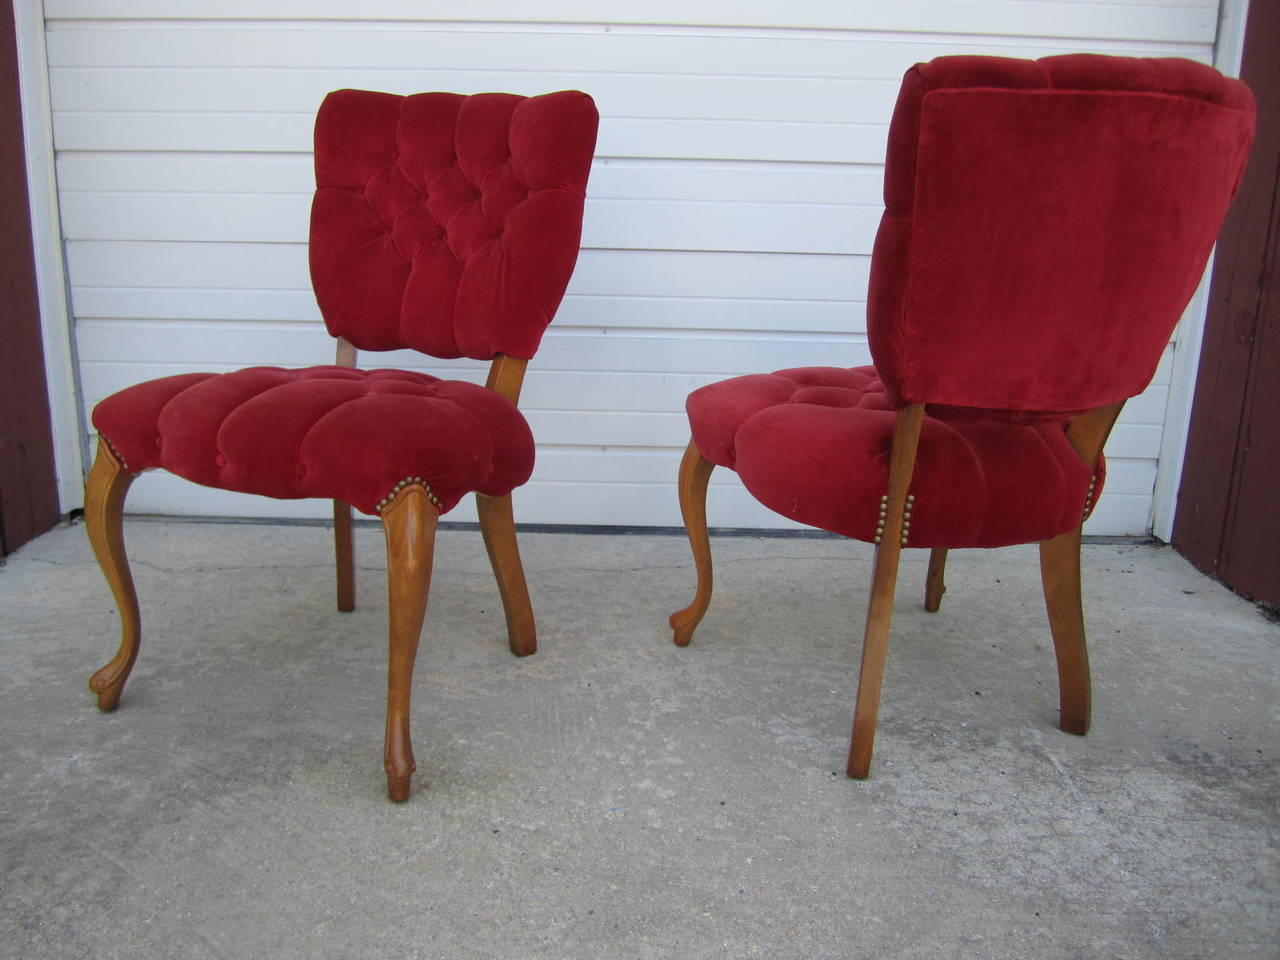 Lovely Pair Of Queen Anne Style Red Velvet Tufted Side Chairs. These Chairs  Are Circa